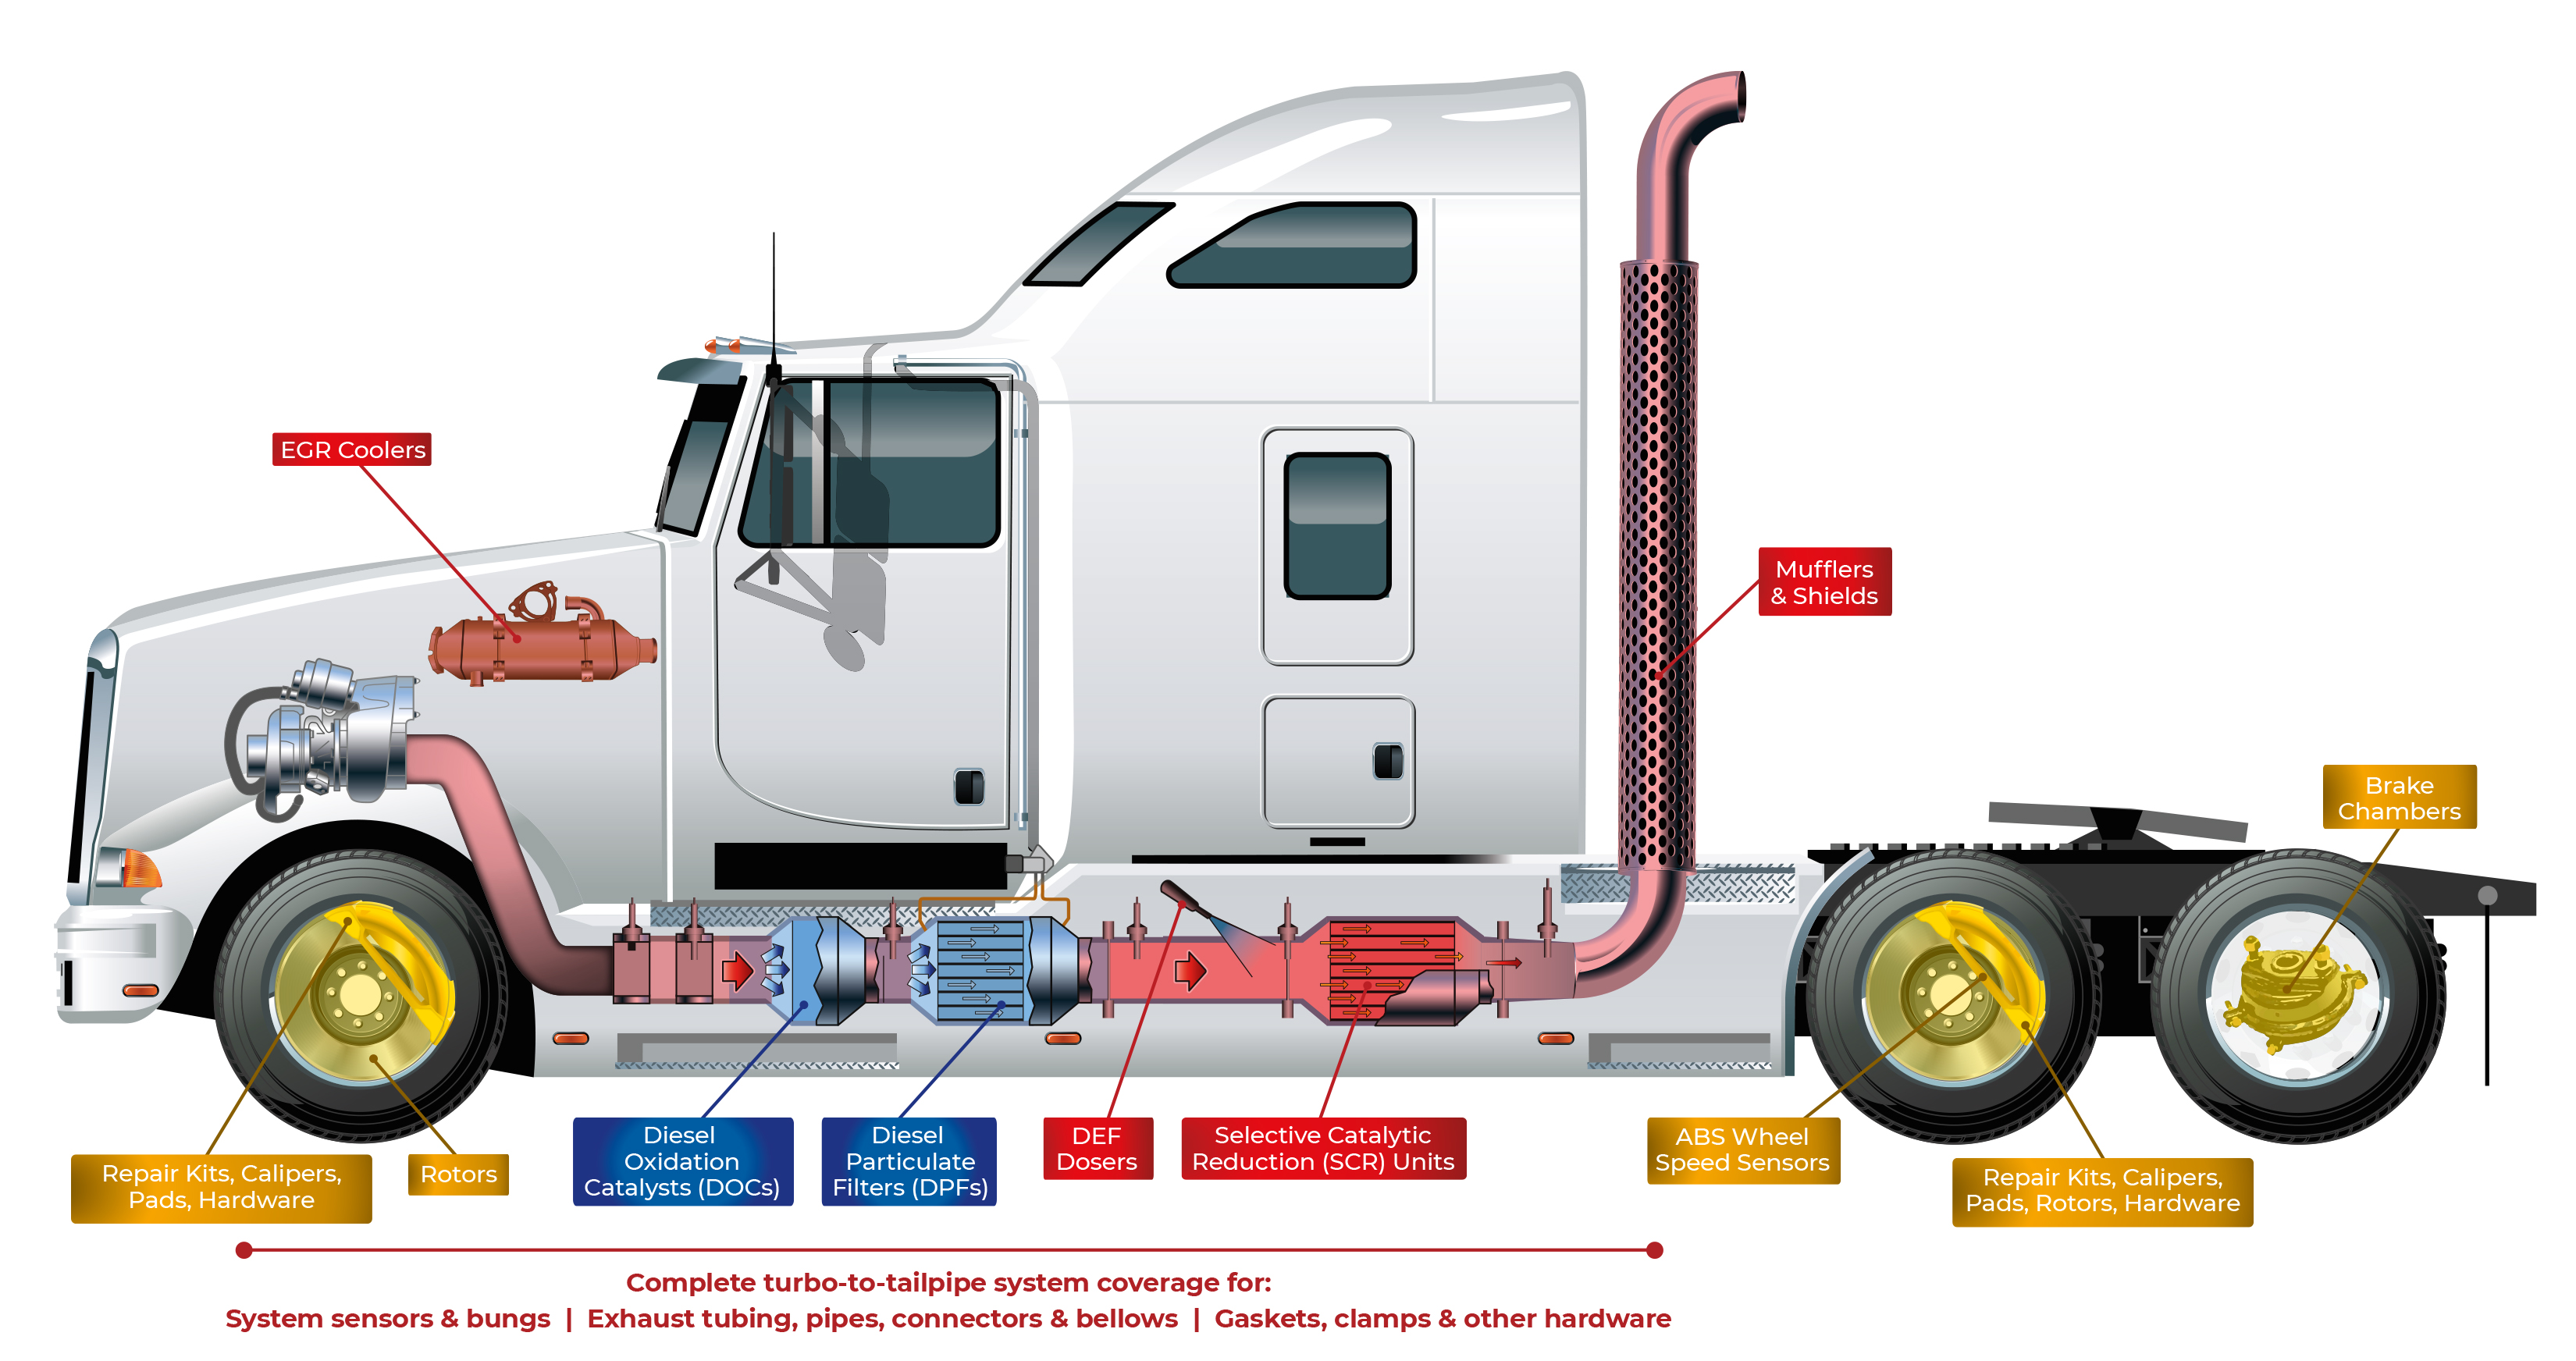 Assembly Details of the DPF and DOC on a semi truck